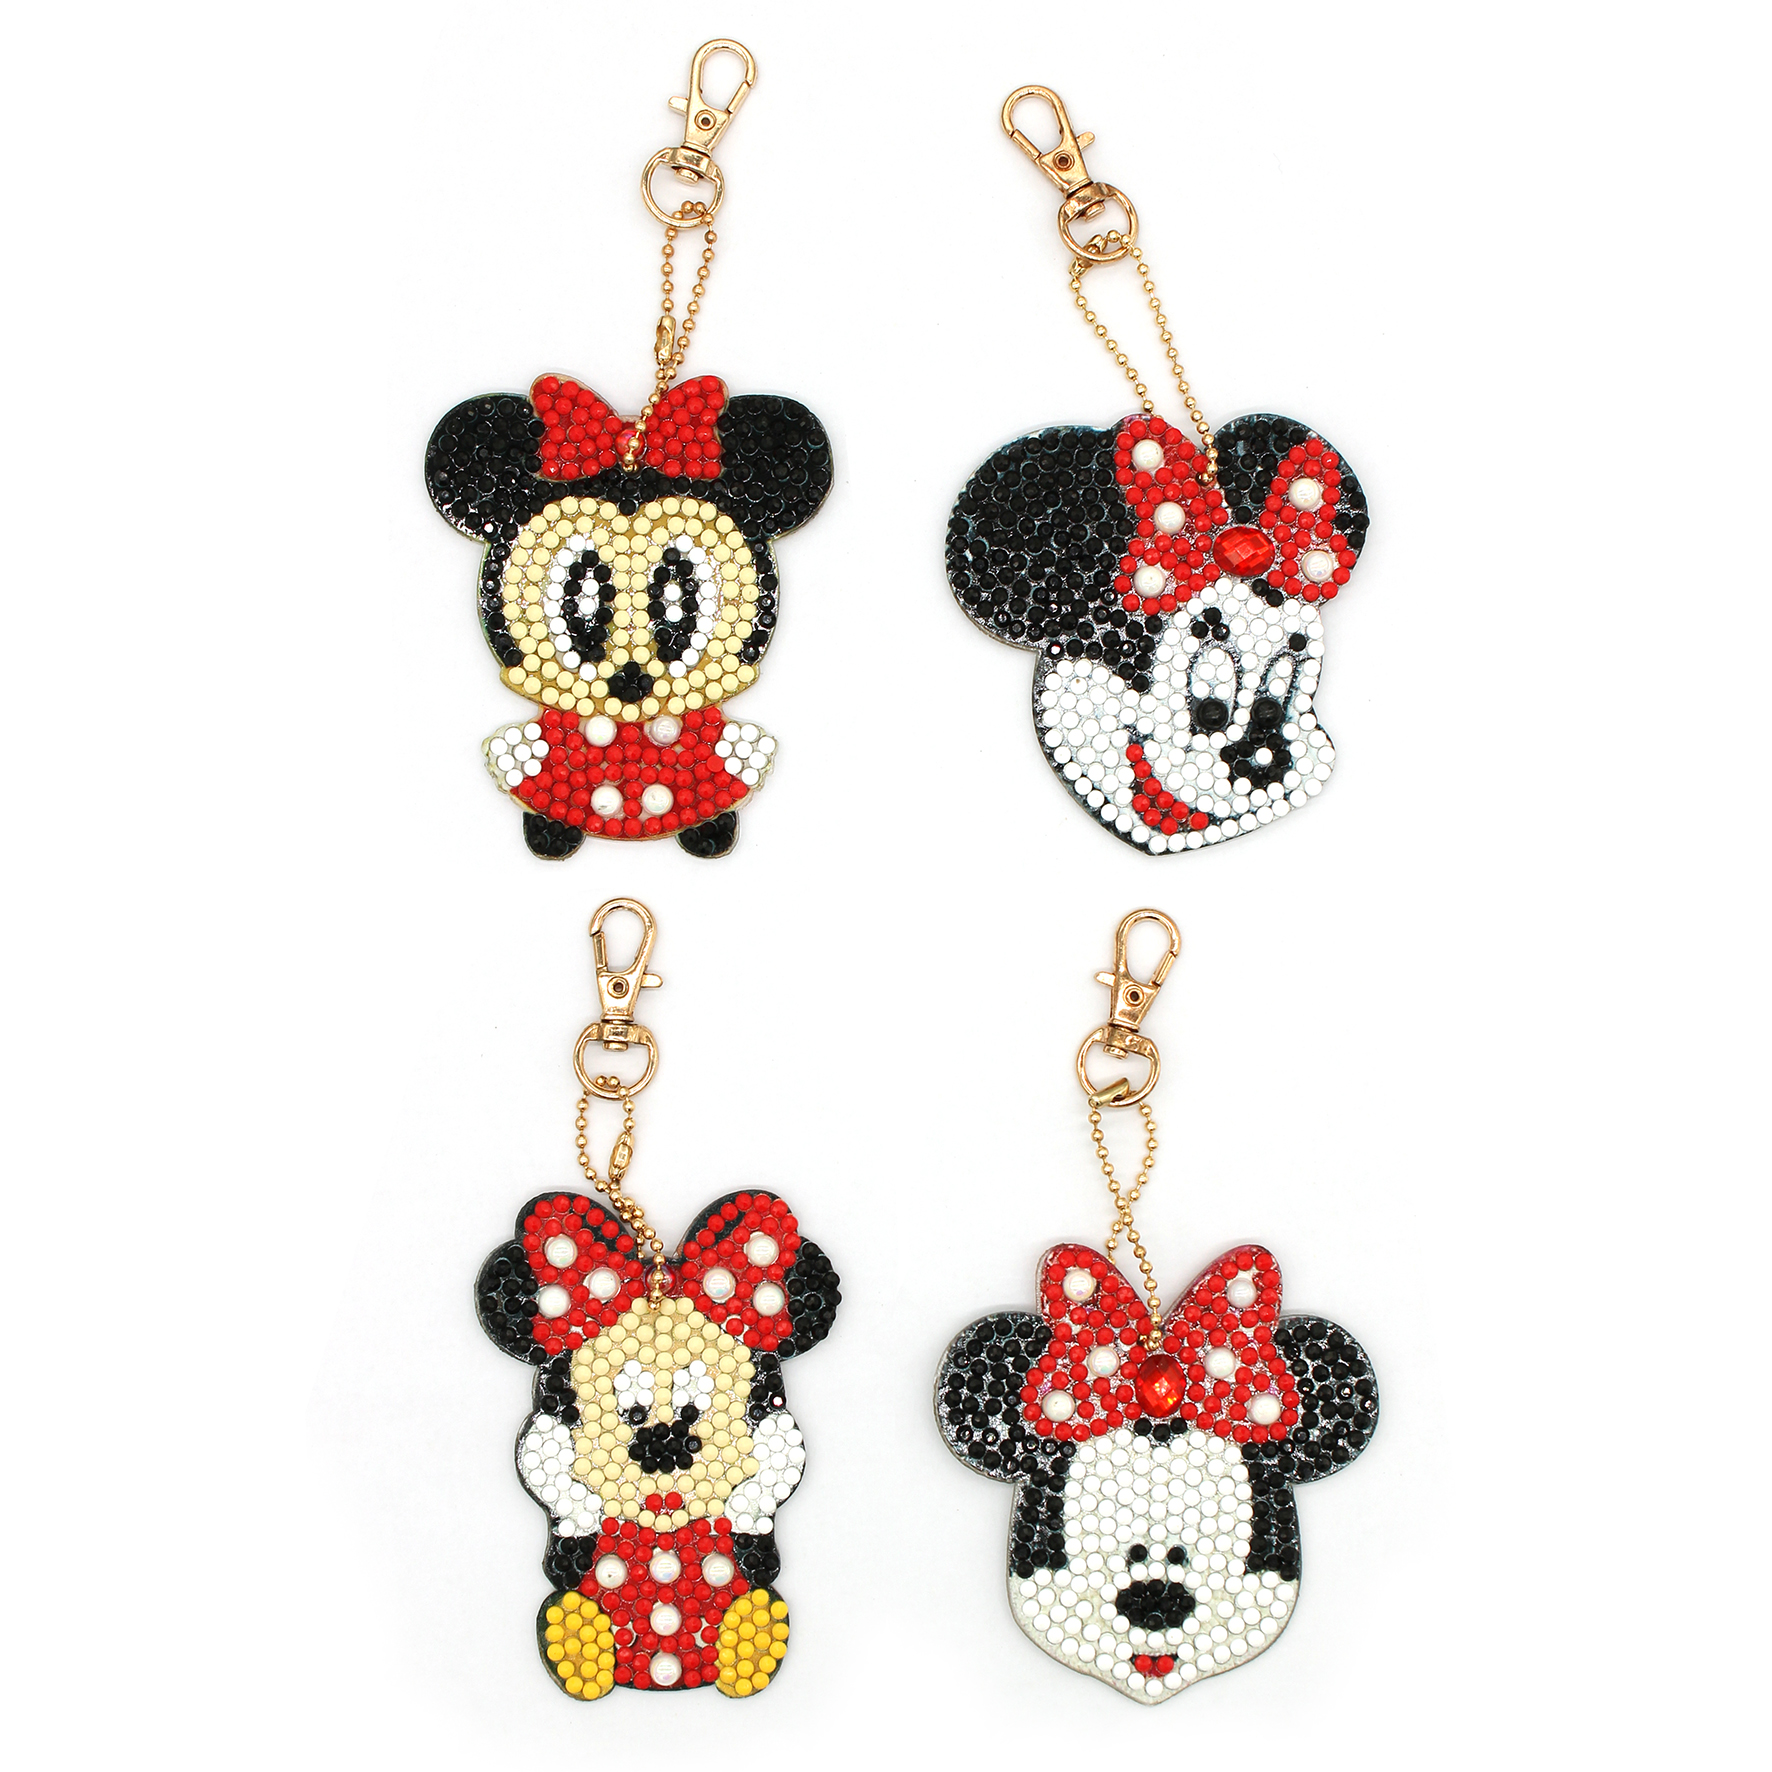 Shirliben Bag Ornaments Diy Crafts Minnie Mickey Mouse Diamond Painting Keychain 4pcs Diamond Mosaic Woman Girl Keyring MK001